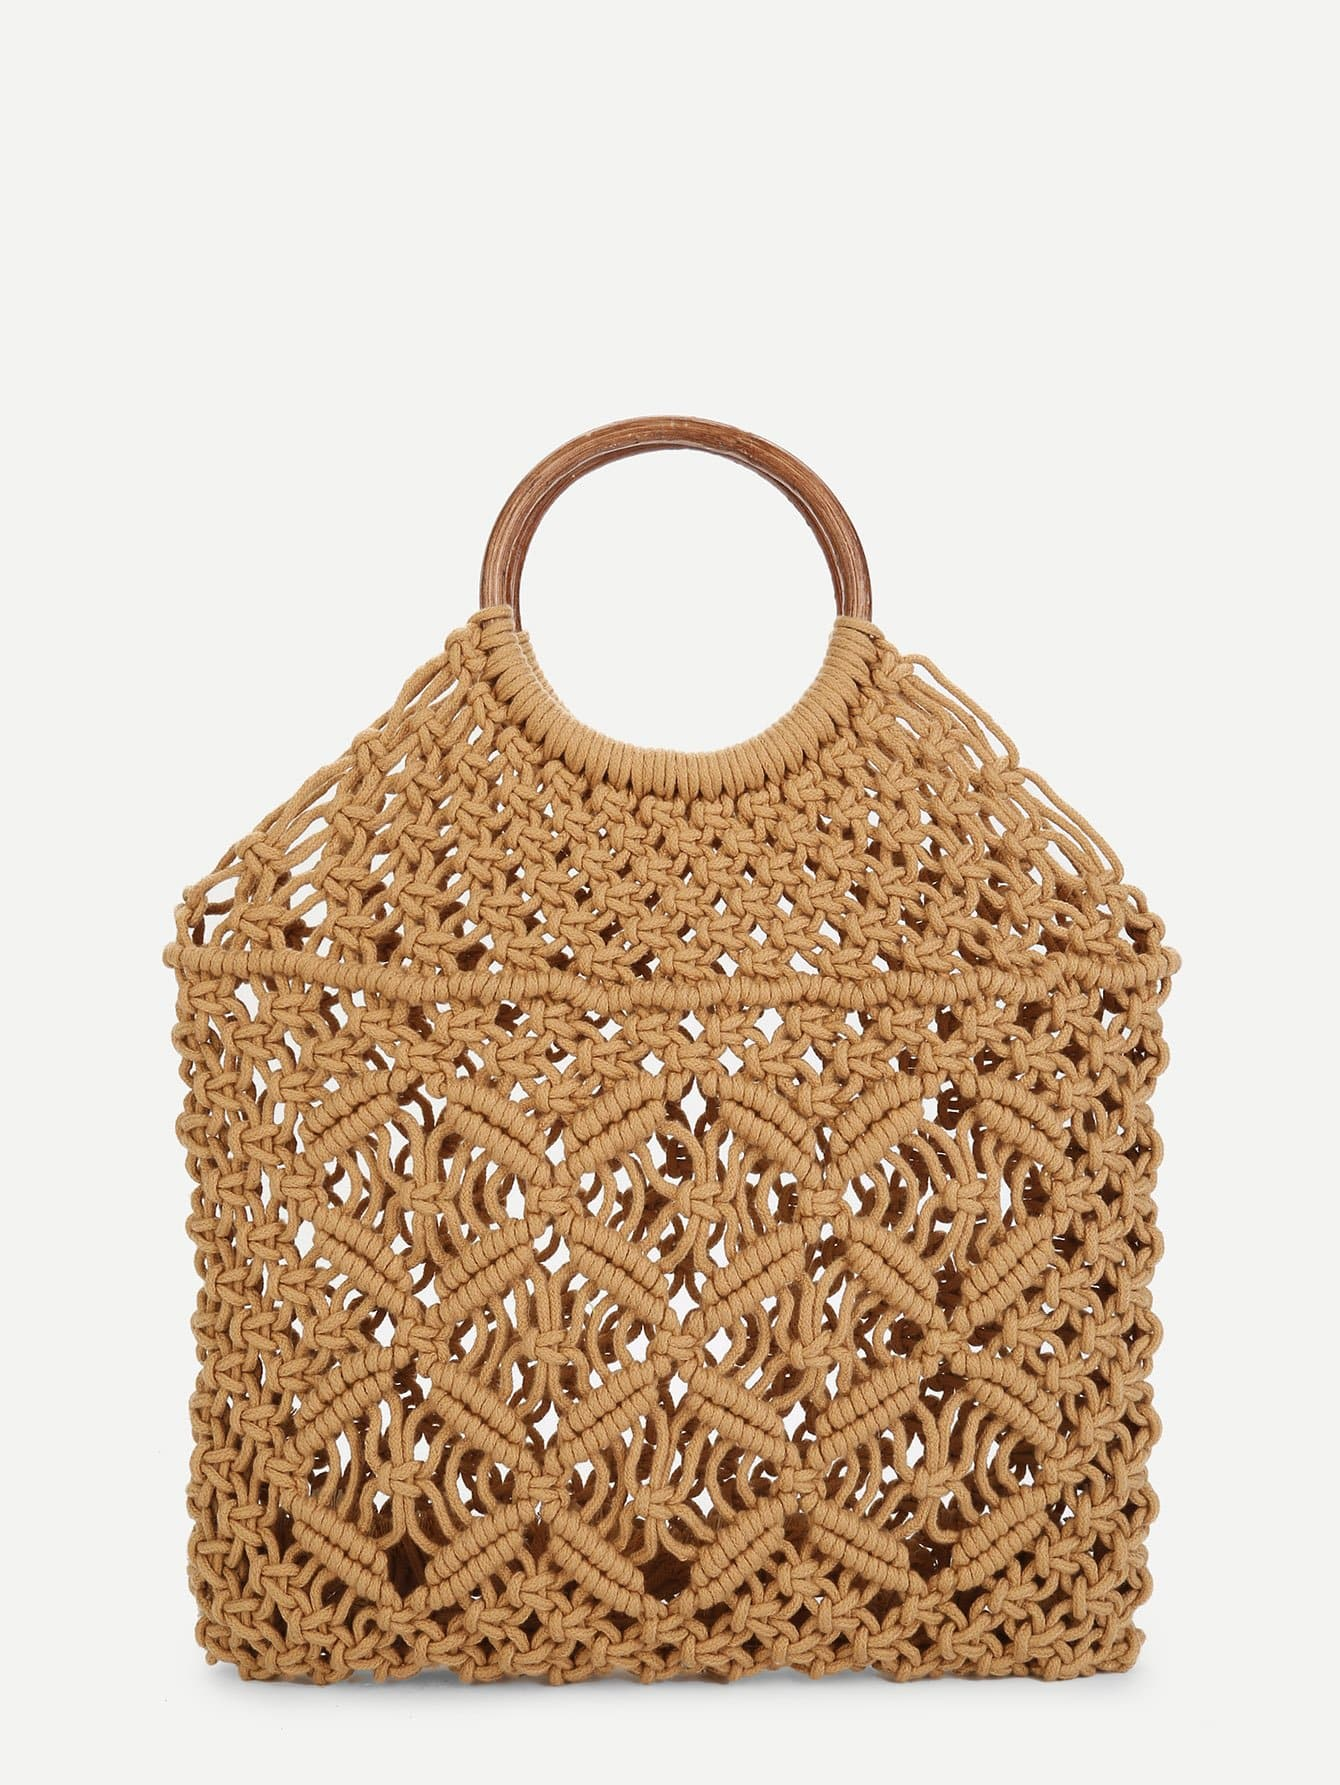 Woven Tote Bag With Ring Handle huawei ups2000 g 6krtl page 3